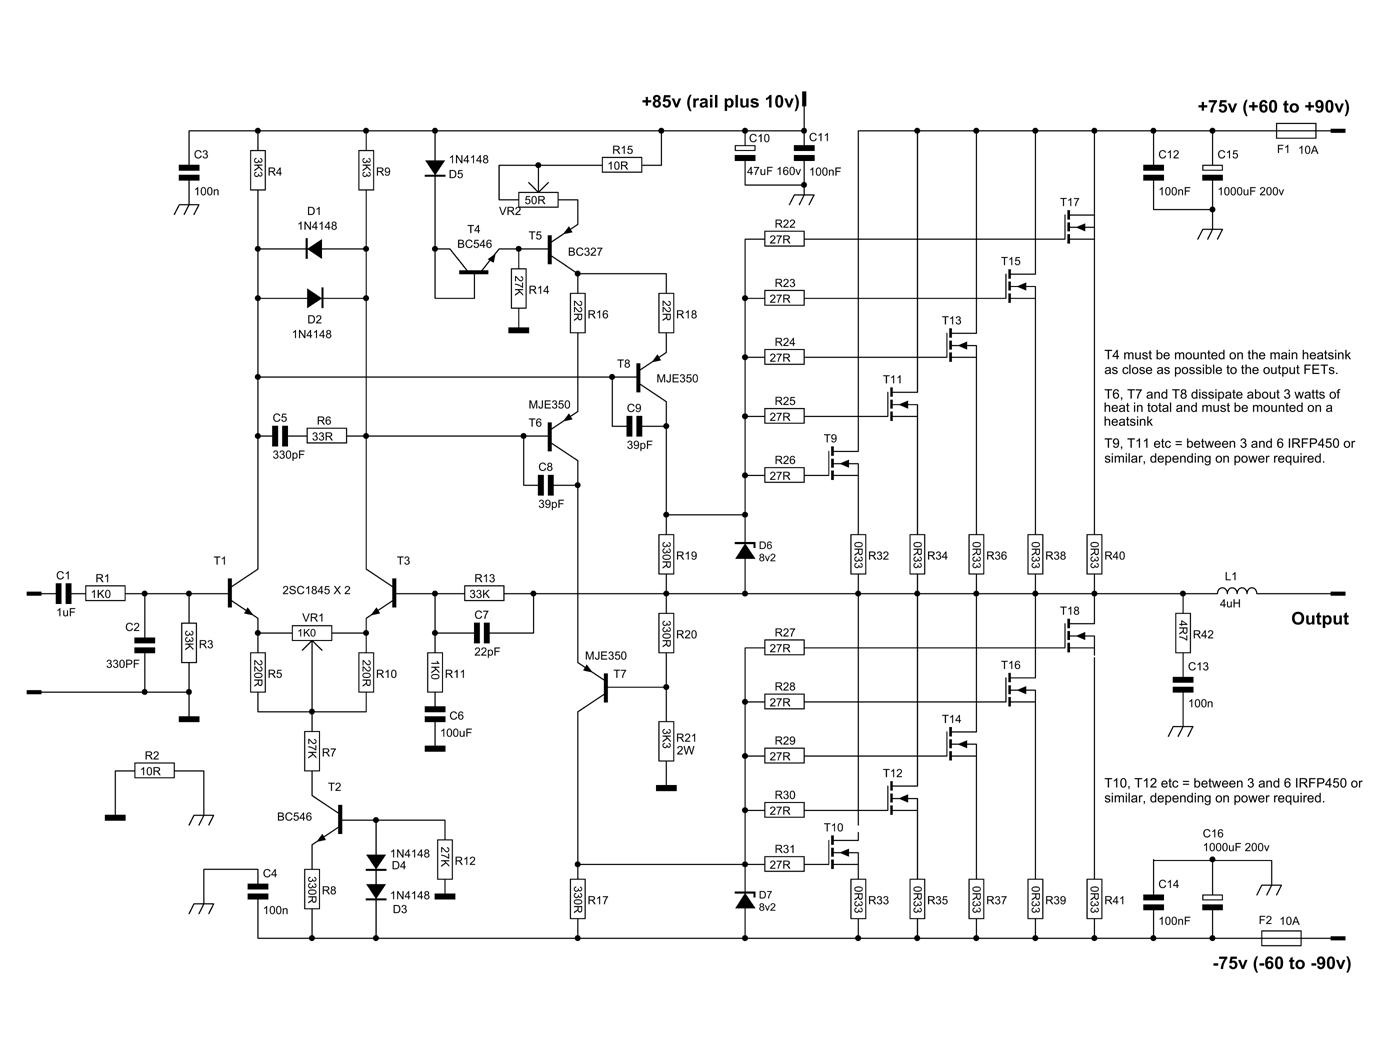 5200 1943 Mosfet 200 200 Watt Ample Ckt Pcb Layout - 600 Watt Mosfet Power  Amplifier. 600 Watt Mosfet Power Amplifier Circuit Diagram ...